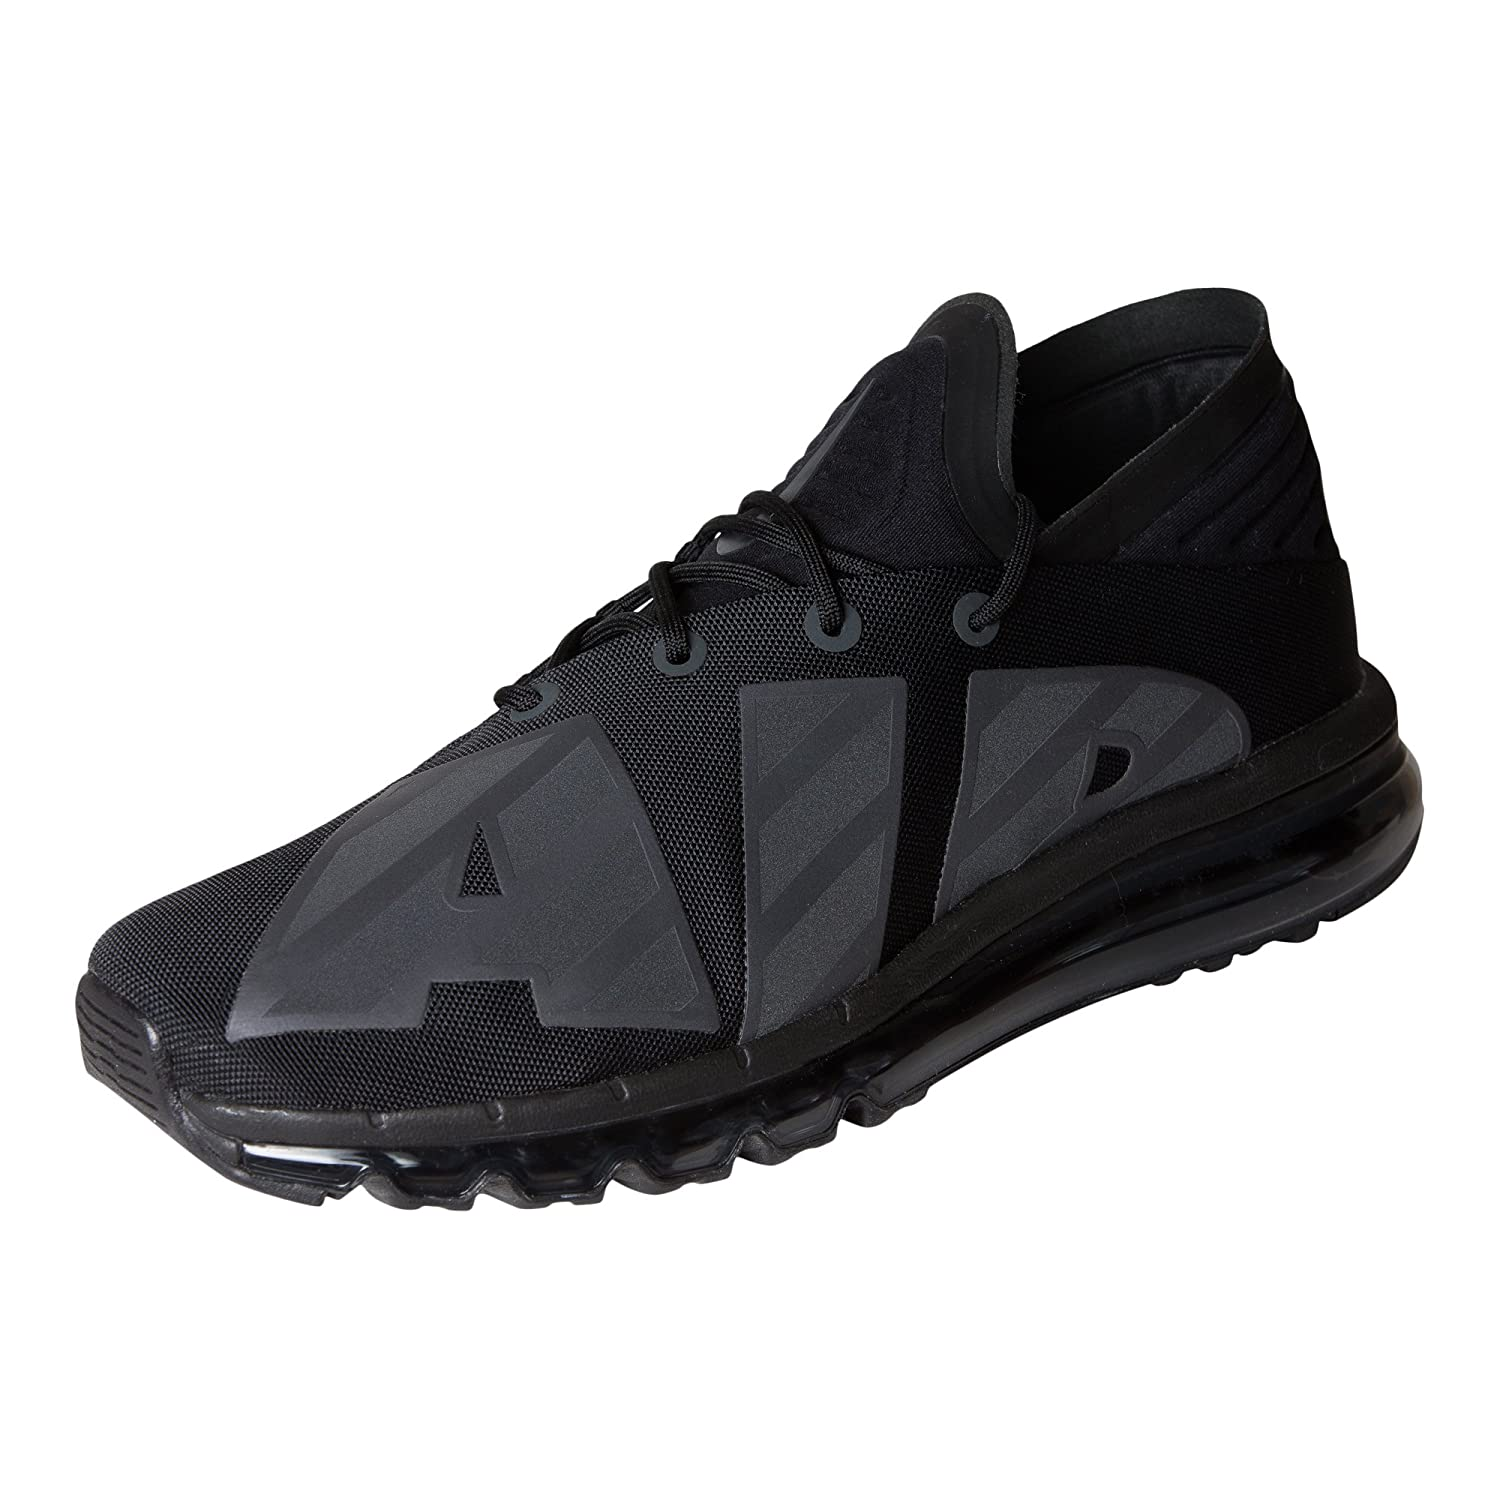 NIKE Men's Air Max Flair Running Shoes B0763R63FZ 9.5 D(M) US|Black/Anthracite-black